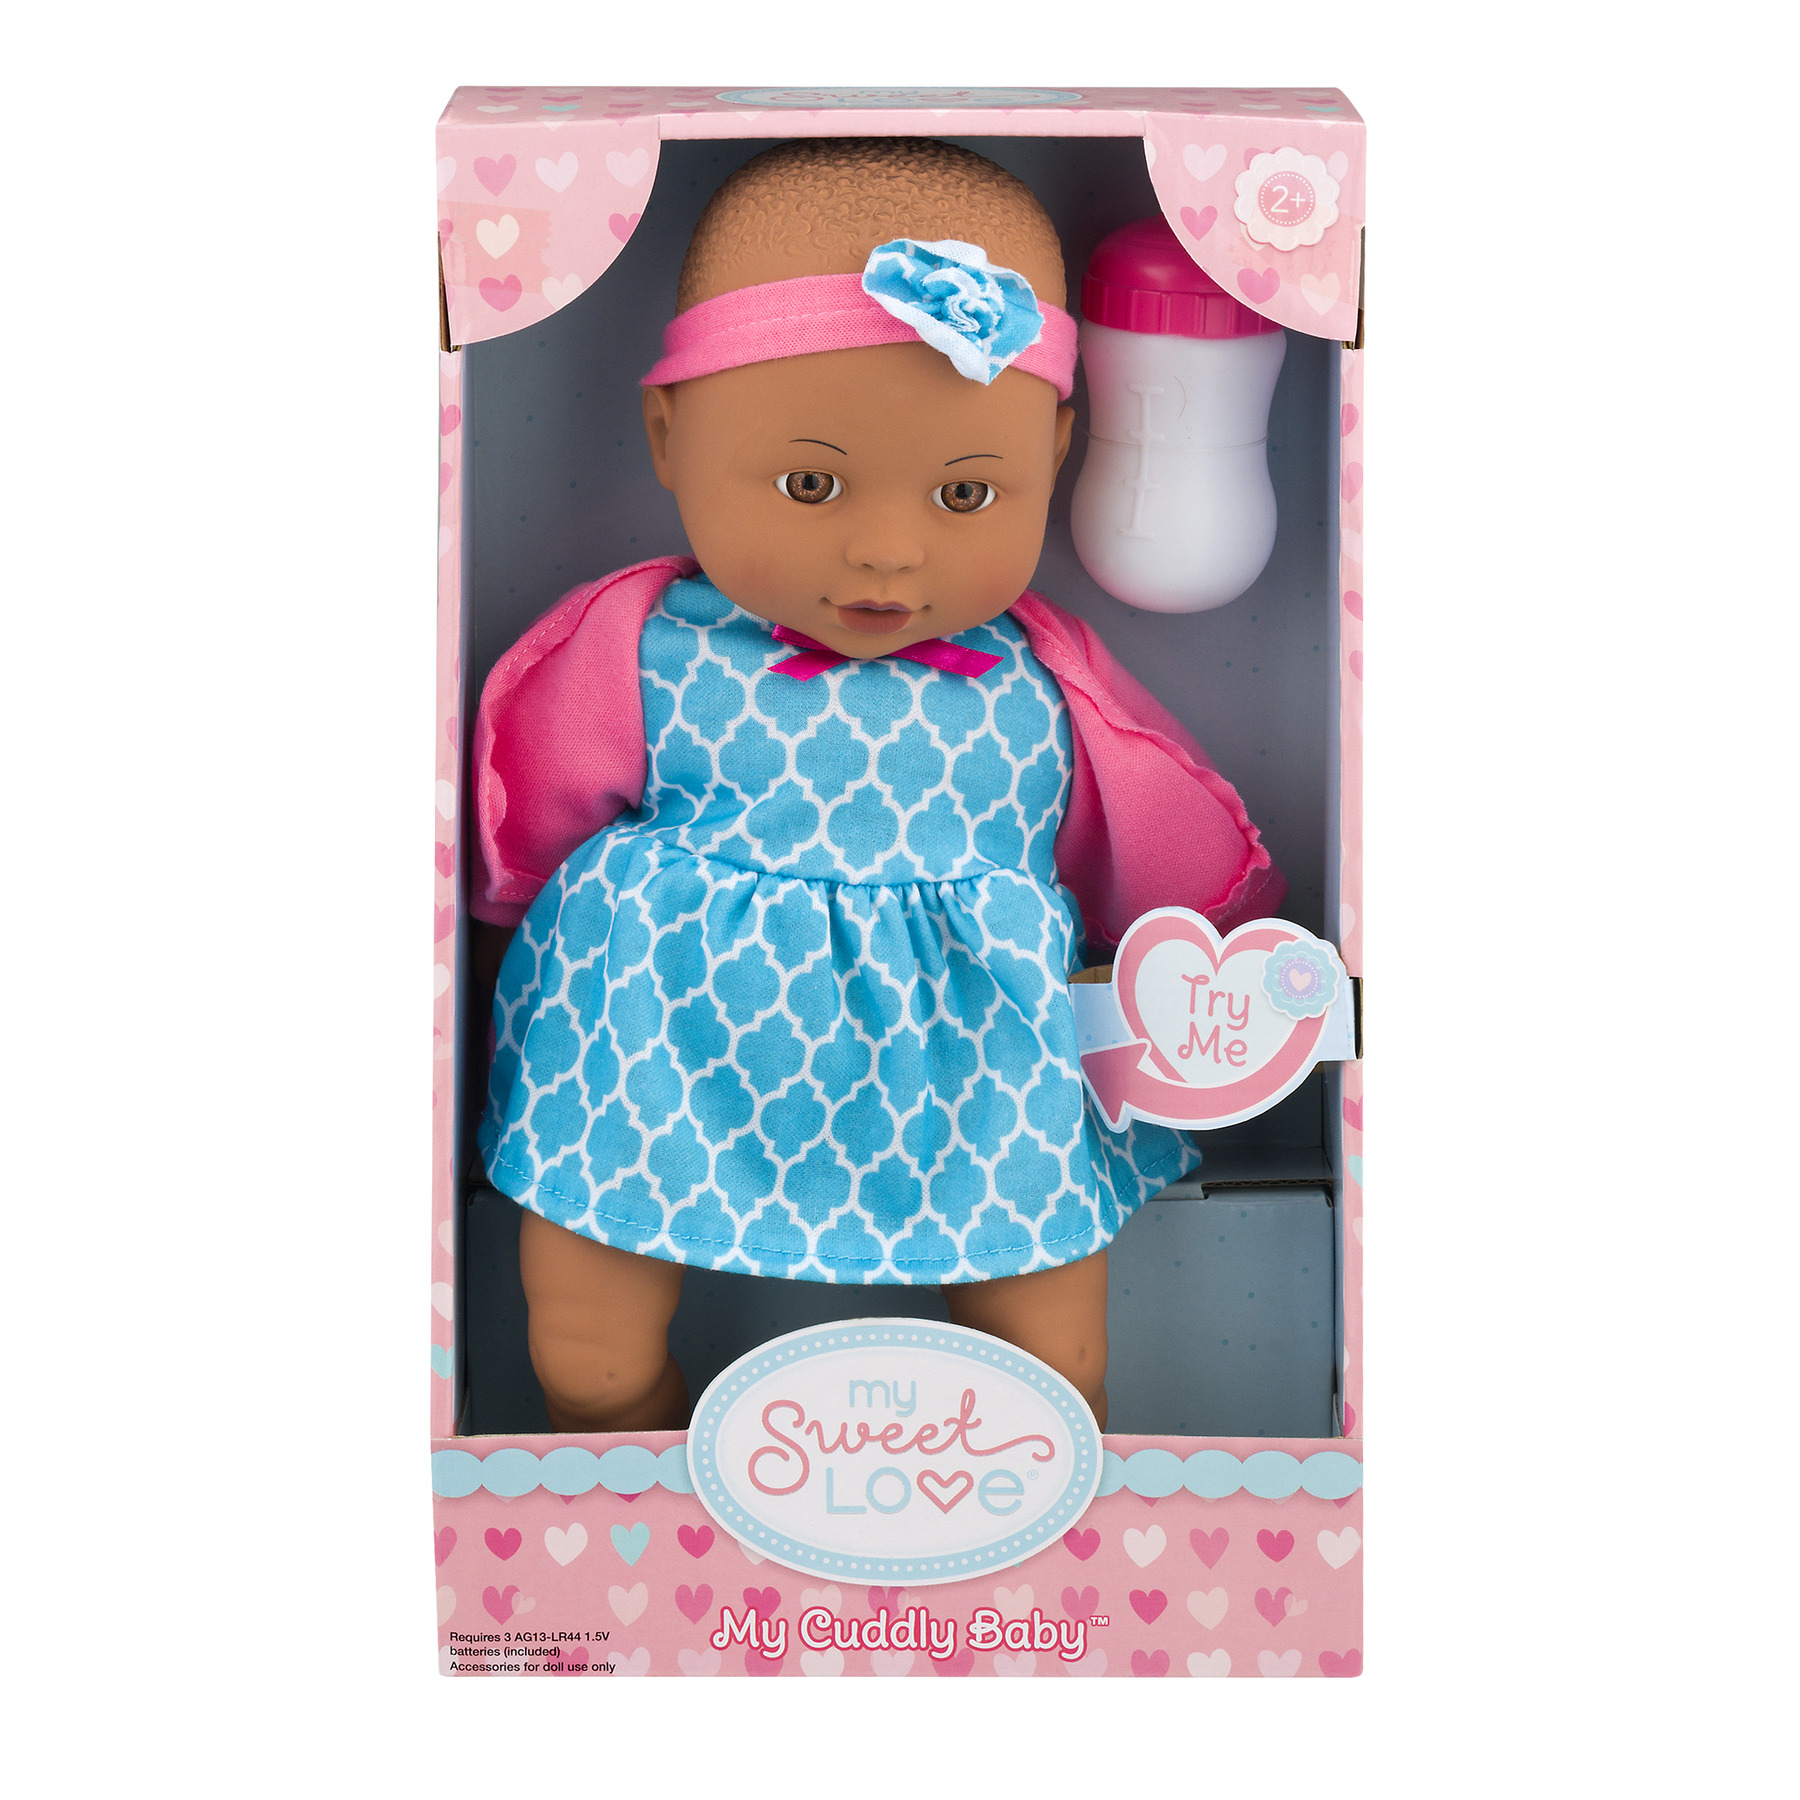 My Sweet Love 12.5-inch My Cuddly Baby with Sound Feature, African American, Pink Outfit